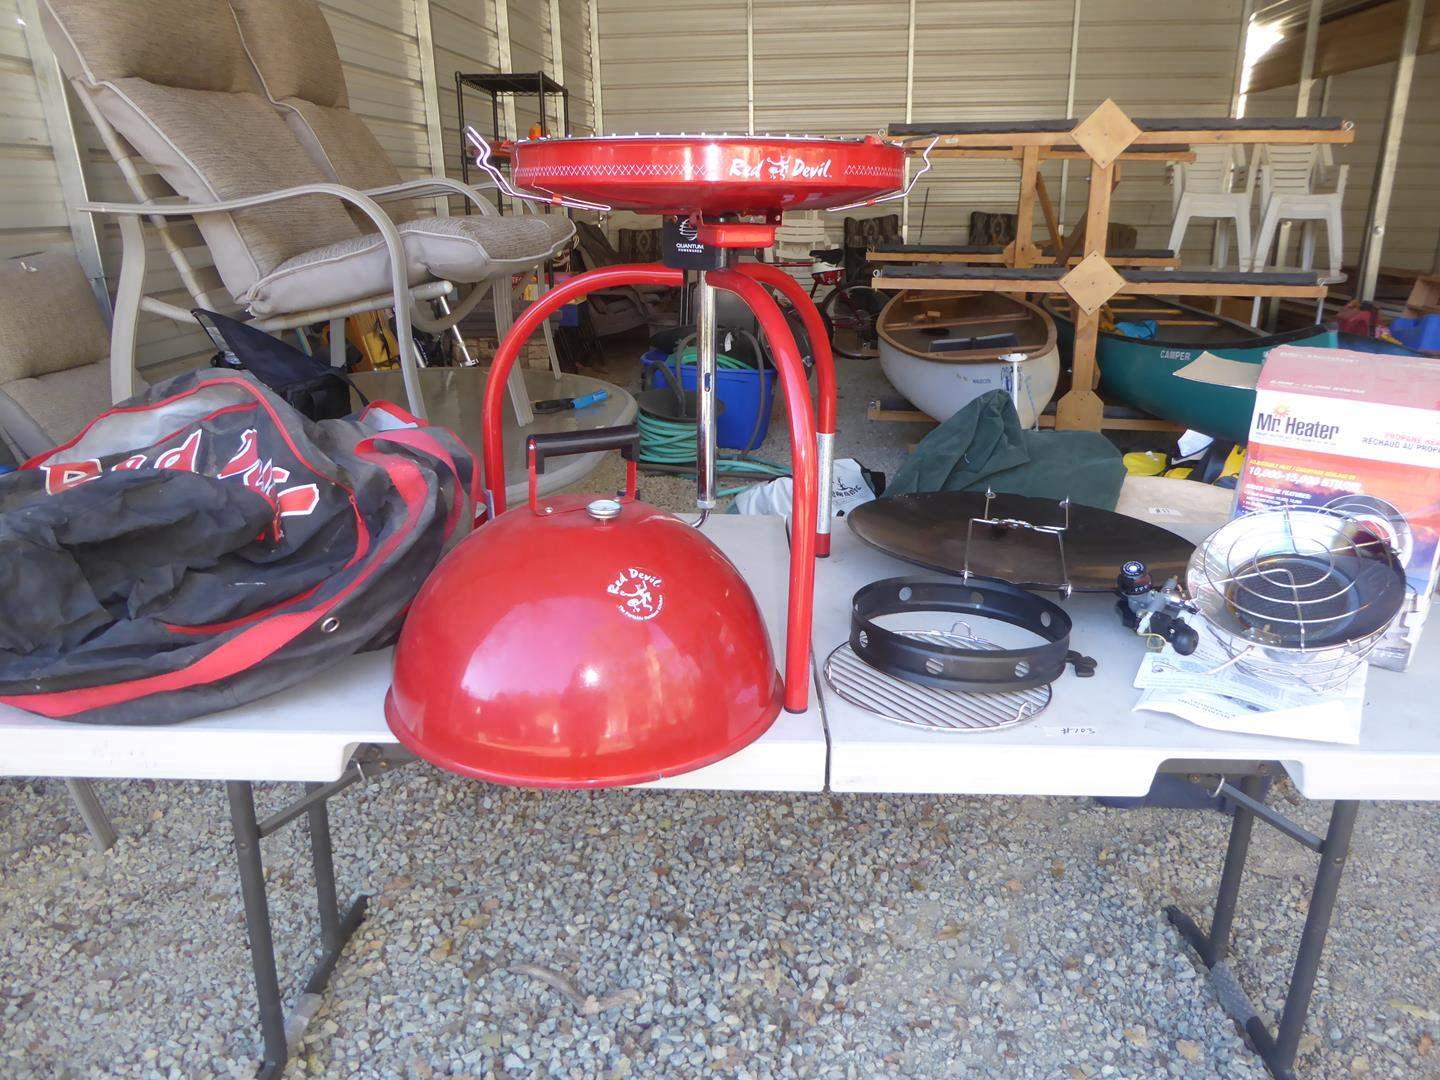 Lot # 103 - Red Devil Portable Gas Outdoor Kitchen Grill & Mr. Heater (main image)